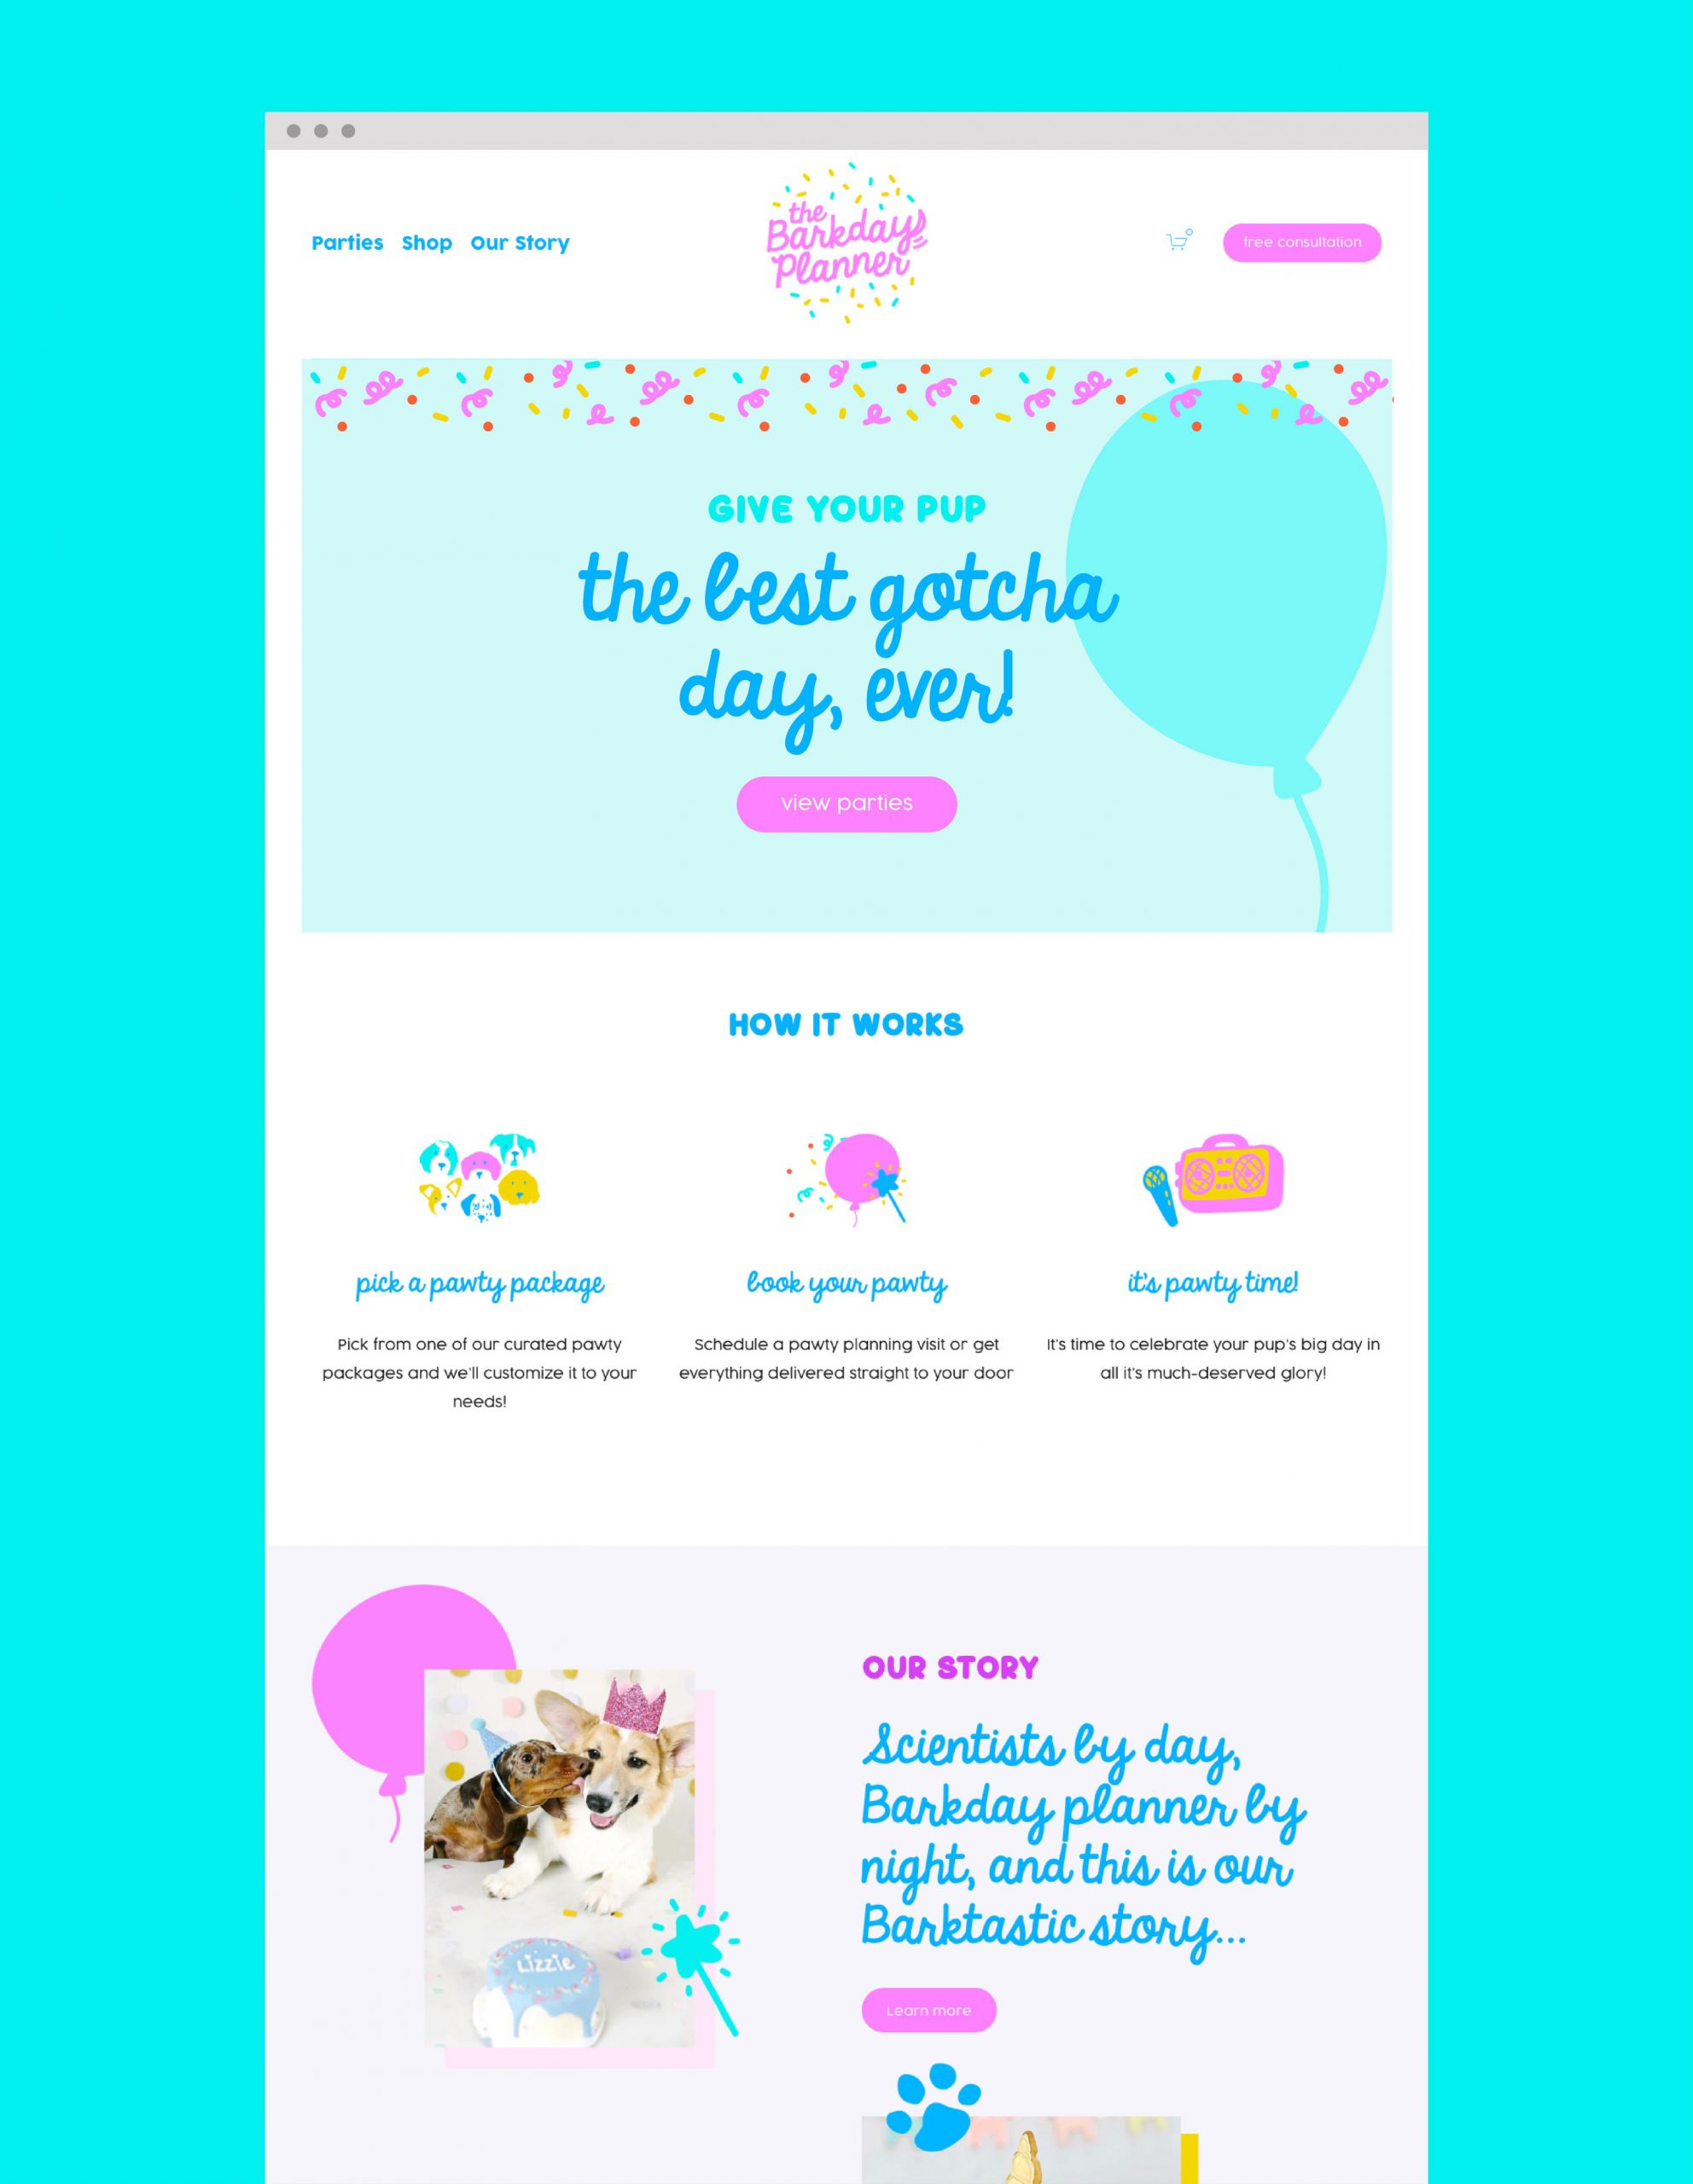 The Barkday Planner website